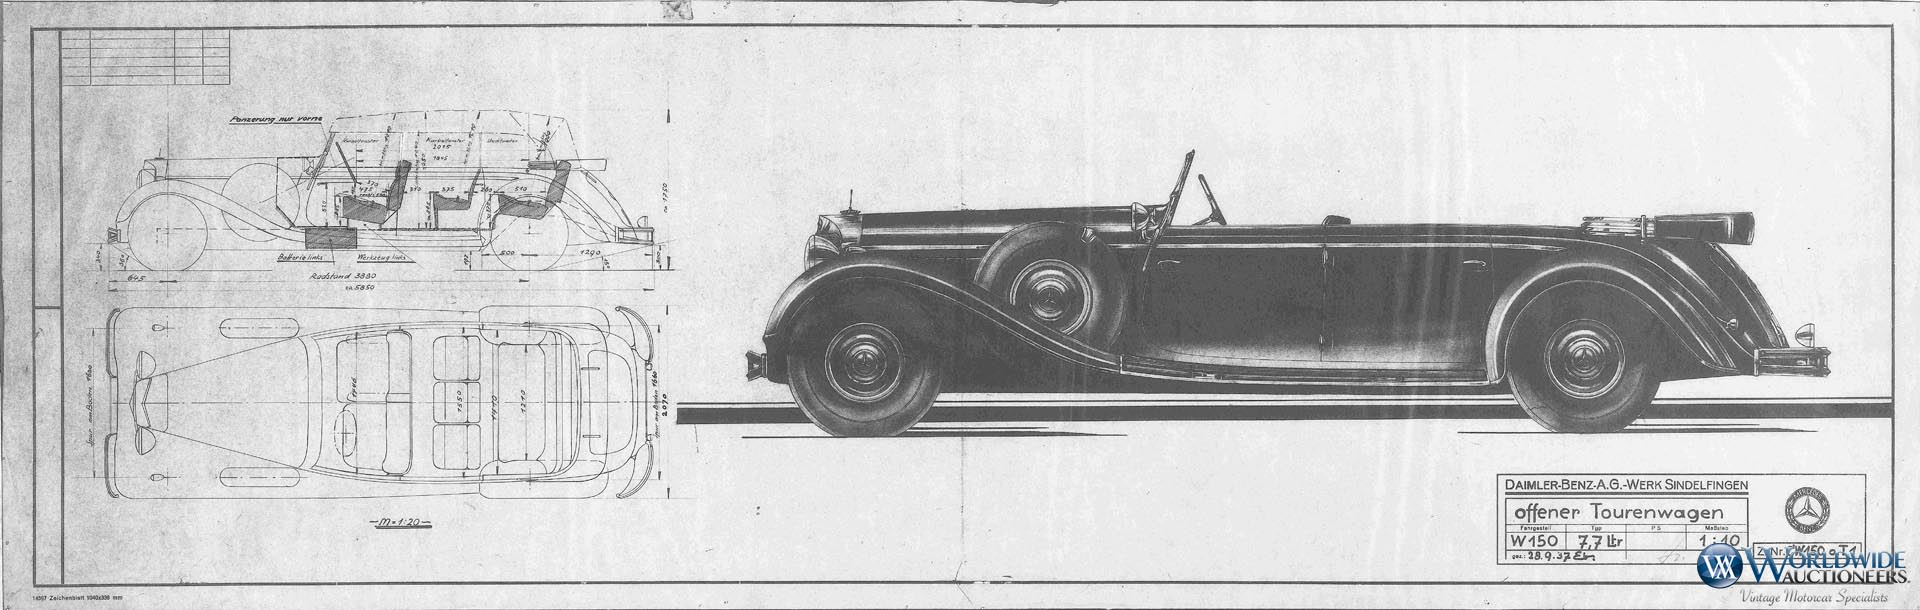 Mercedes-Benz 770K Grosser Open Tourer Adolf Hitler (35)